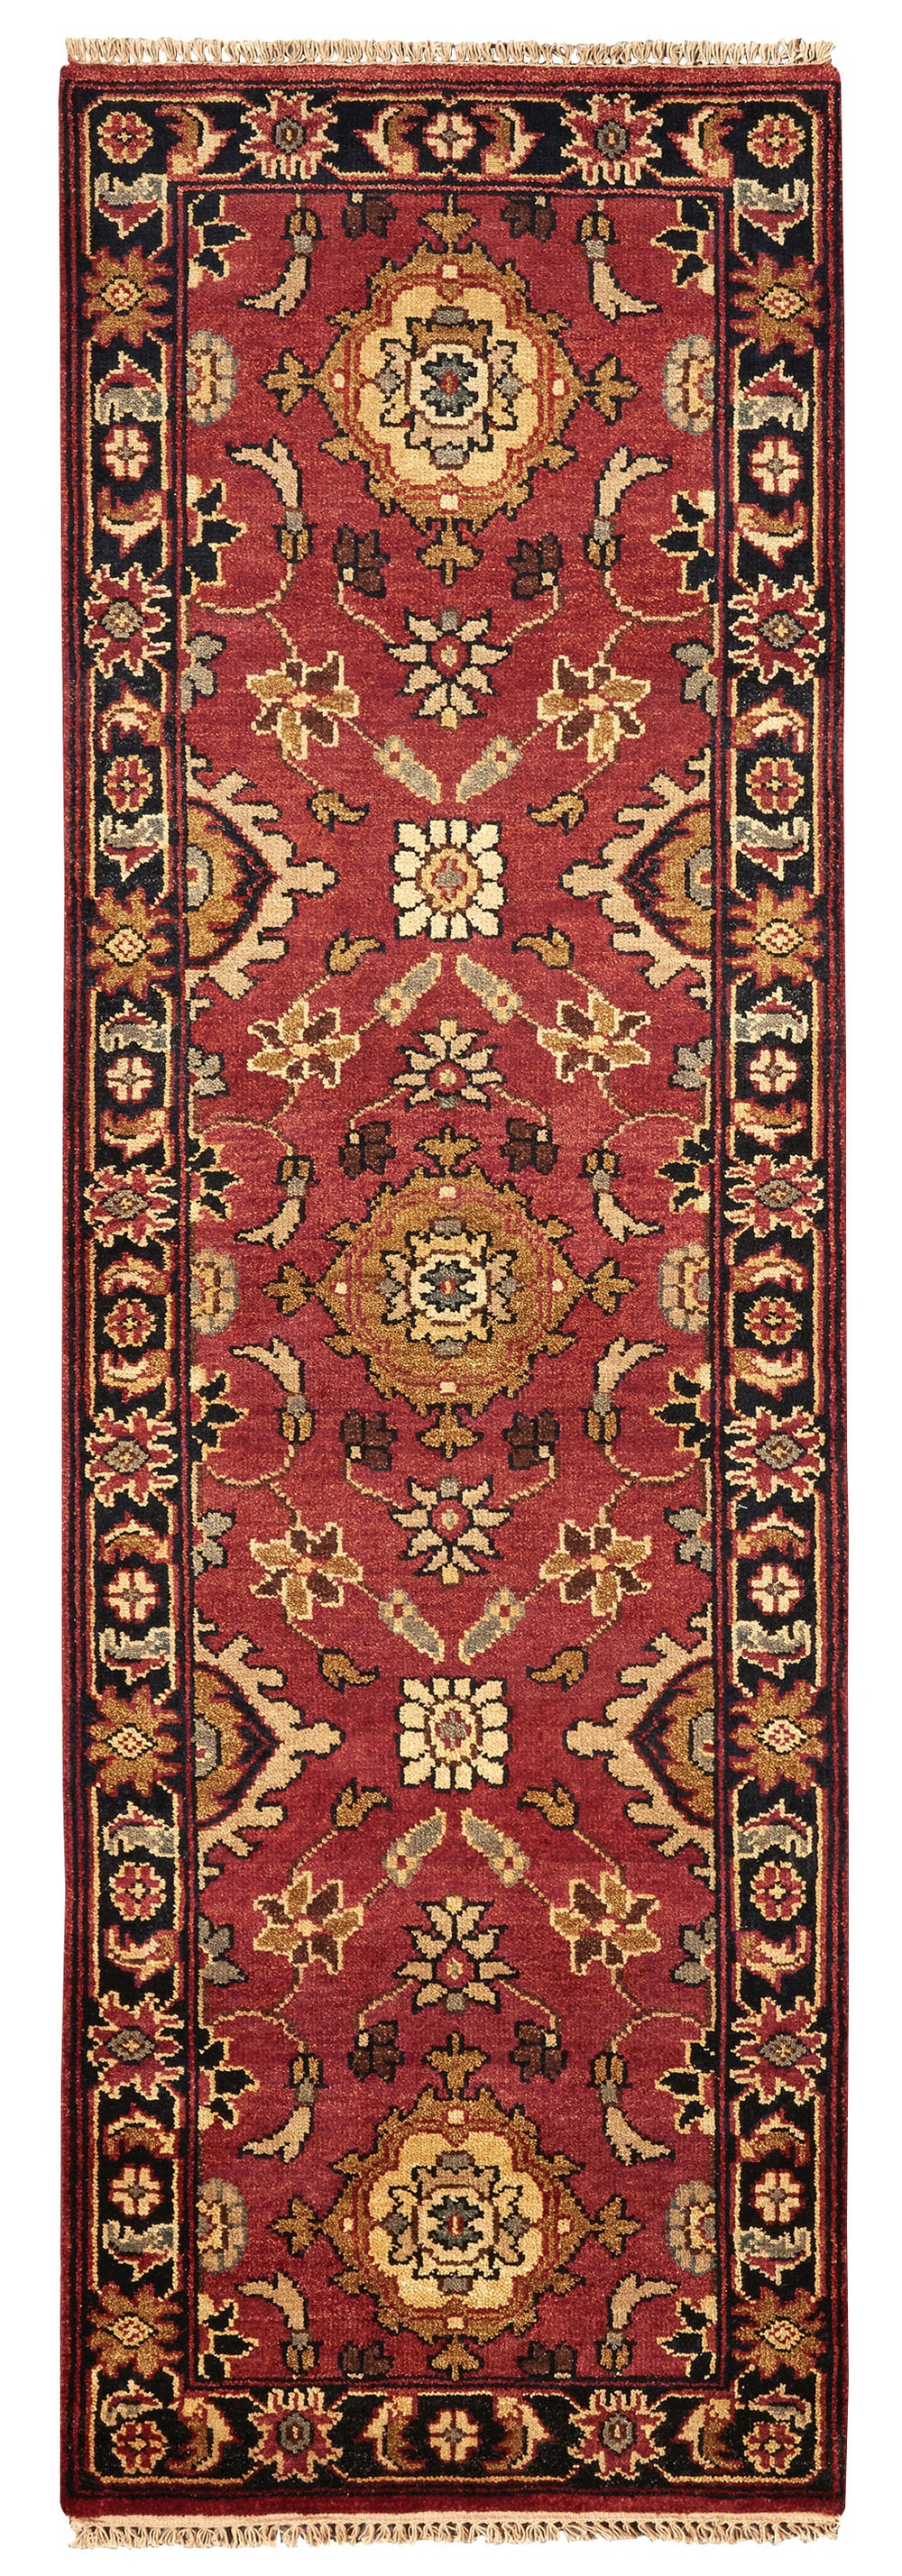 Feizy Ustad 6110F Area Rug